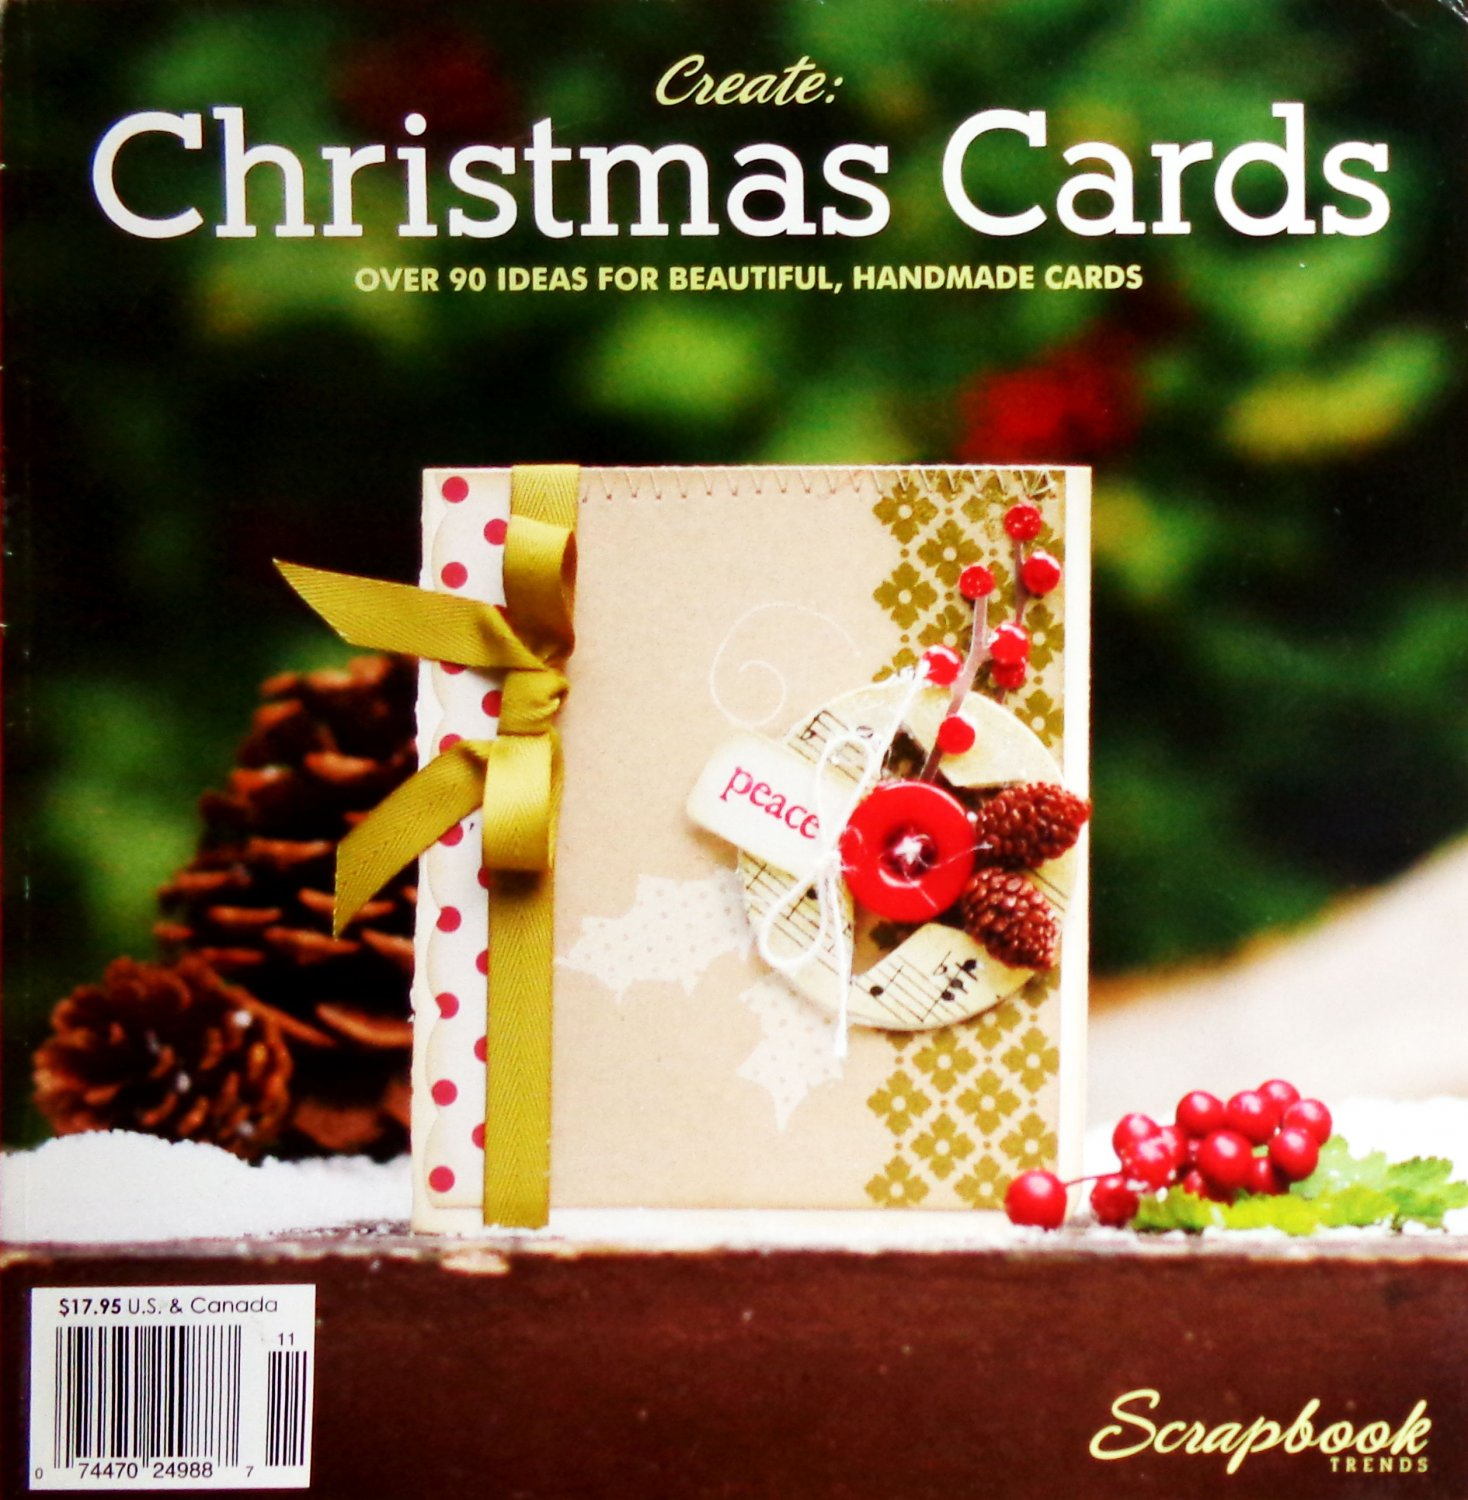 Scrapbook Trends Create Christmas Cards Magazine 2010